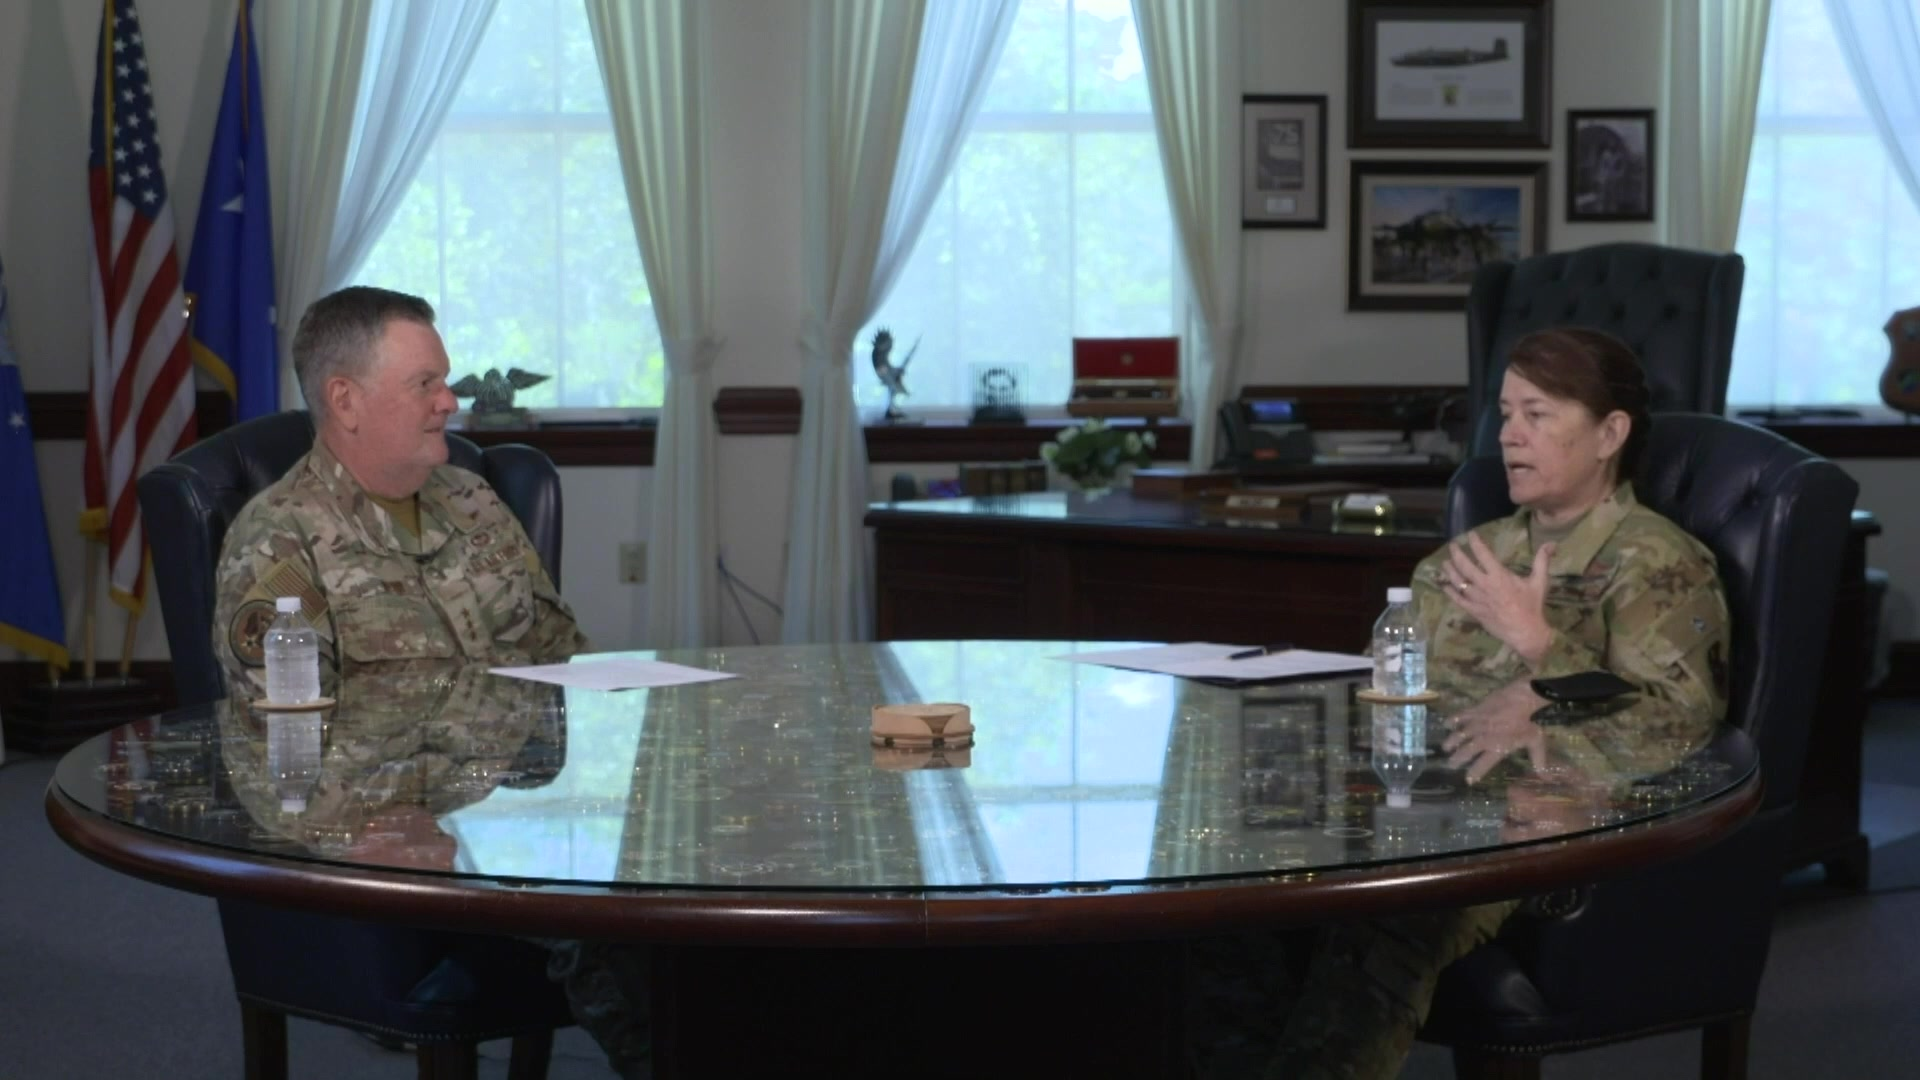 Lt. Gen. Brad Webb, commander of Air Education and Training Command, hosts the seventh episode of Real Talk: Race and Diversity in the Air Force, June 17th, 2021. Joining Lt. Gen. Webb for this episode will be: Brig. Gen. Brenda Cartier, Incoming AETC Director of Operations.